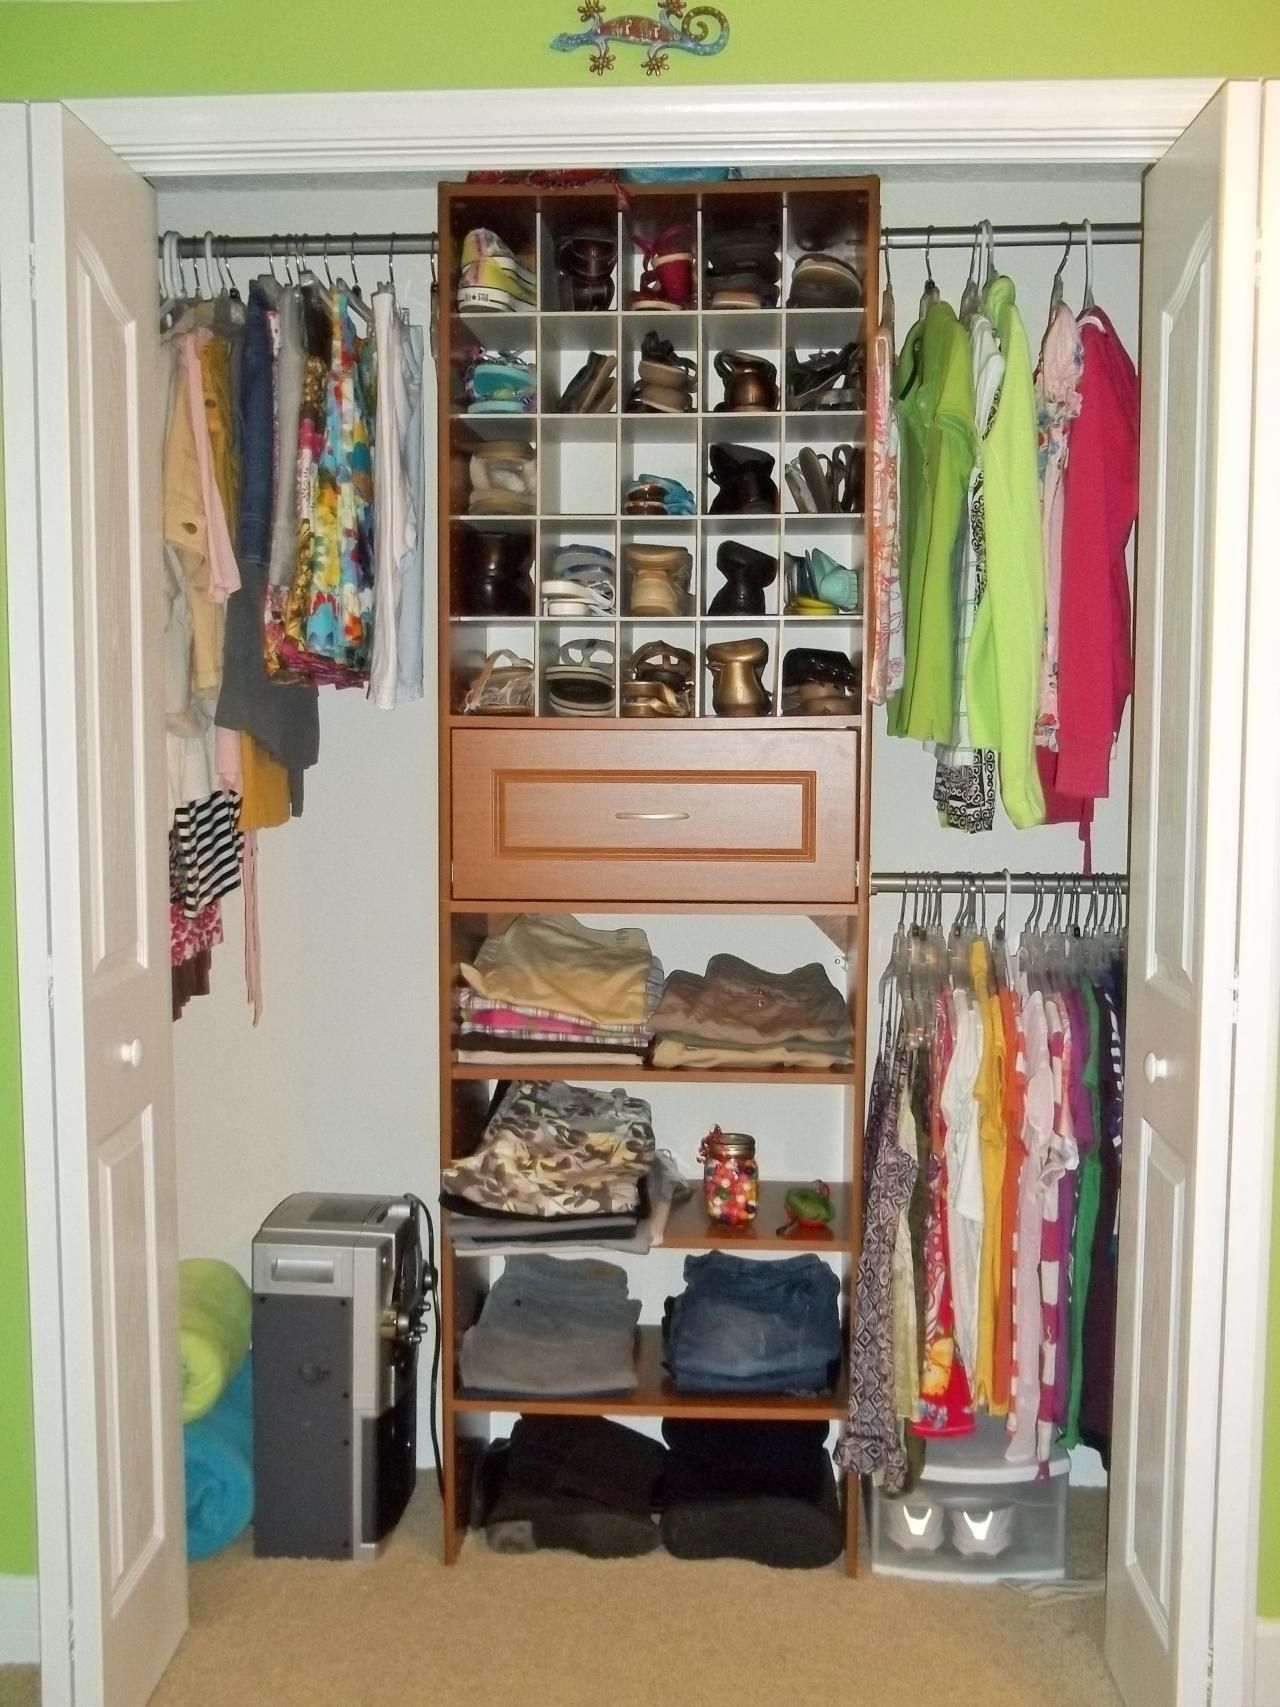 Sketch of Small Bedroom Closet Organization Ideas